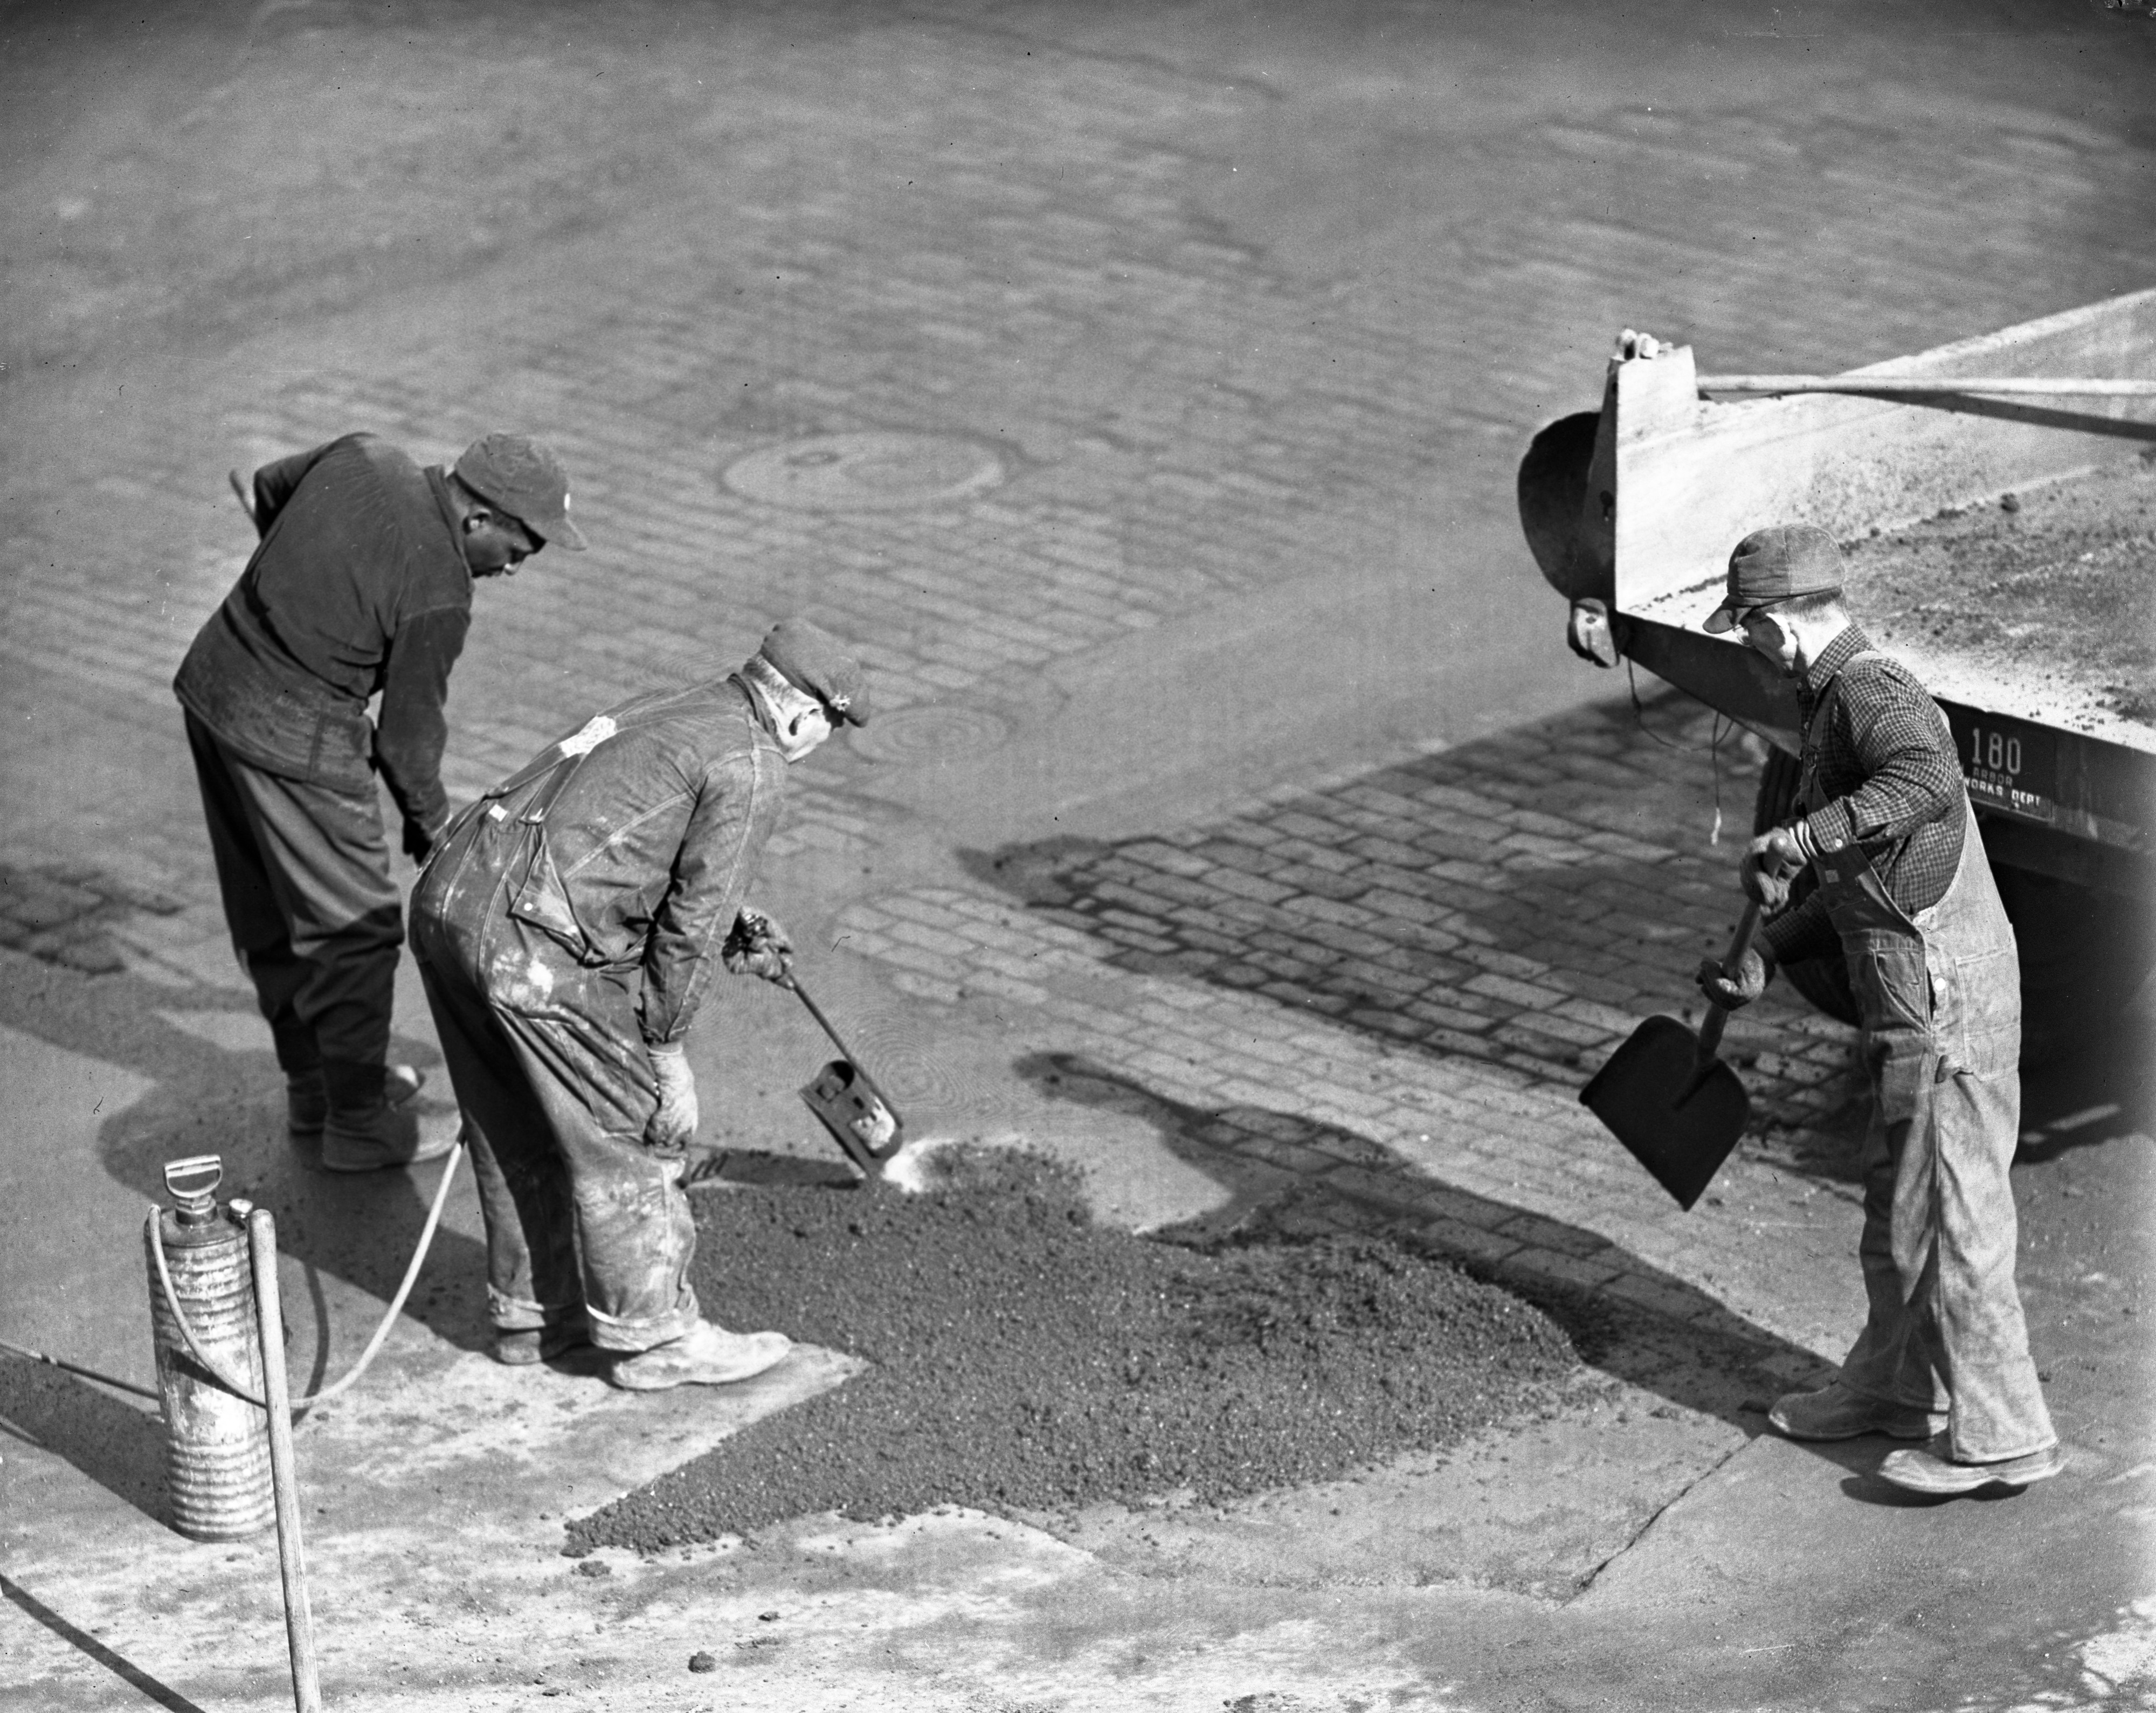 Repairing City Streets, March 1943 image